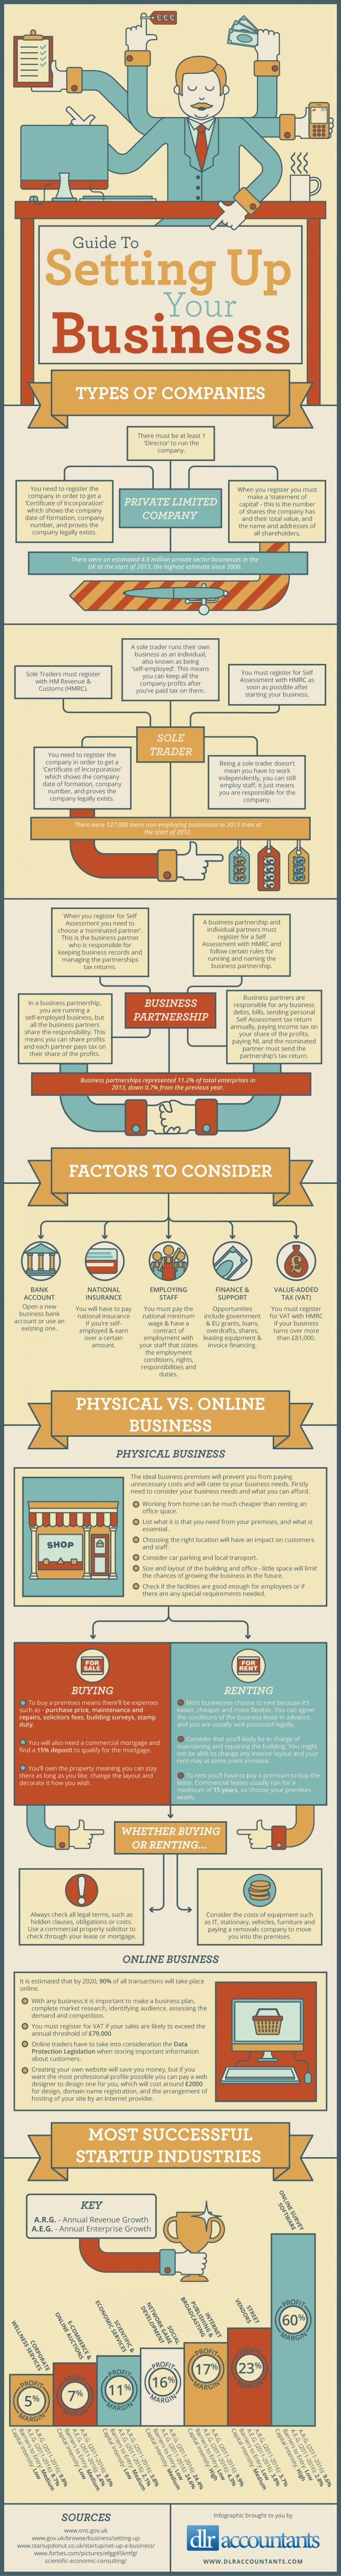 Guide To Setting Up Your Business Infographic